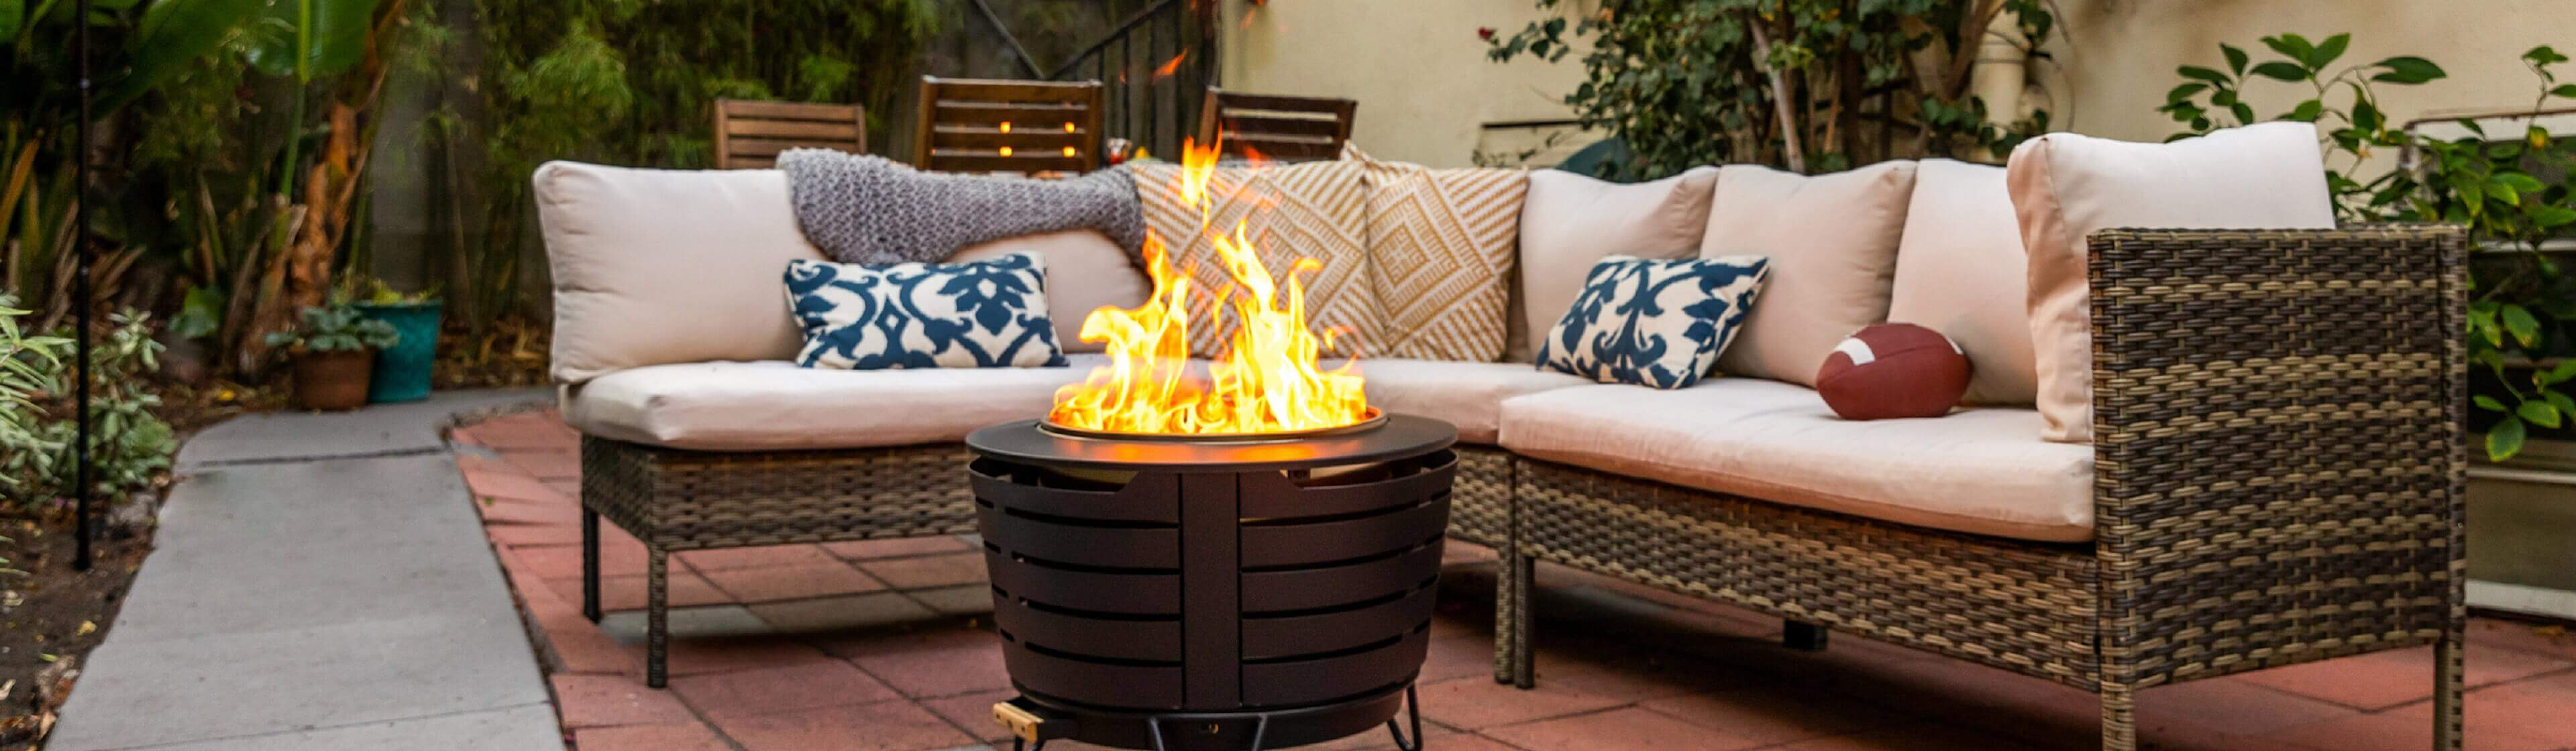 BUYER'S GUIDE  FIRE PITS